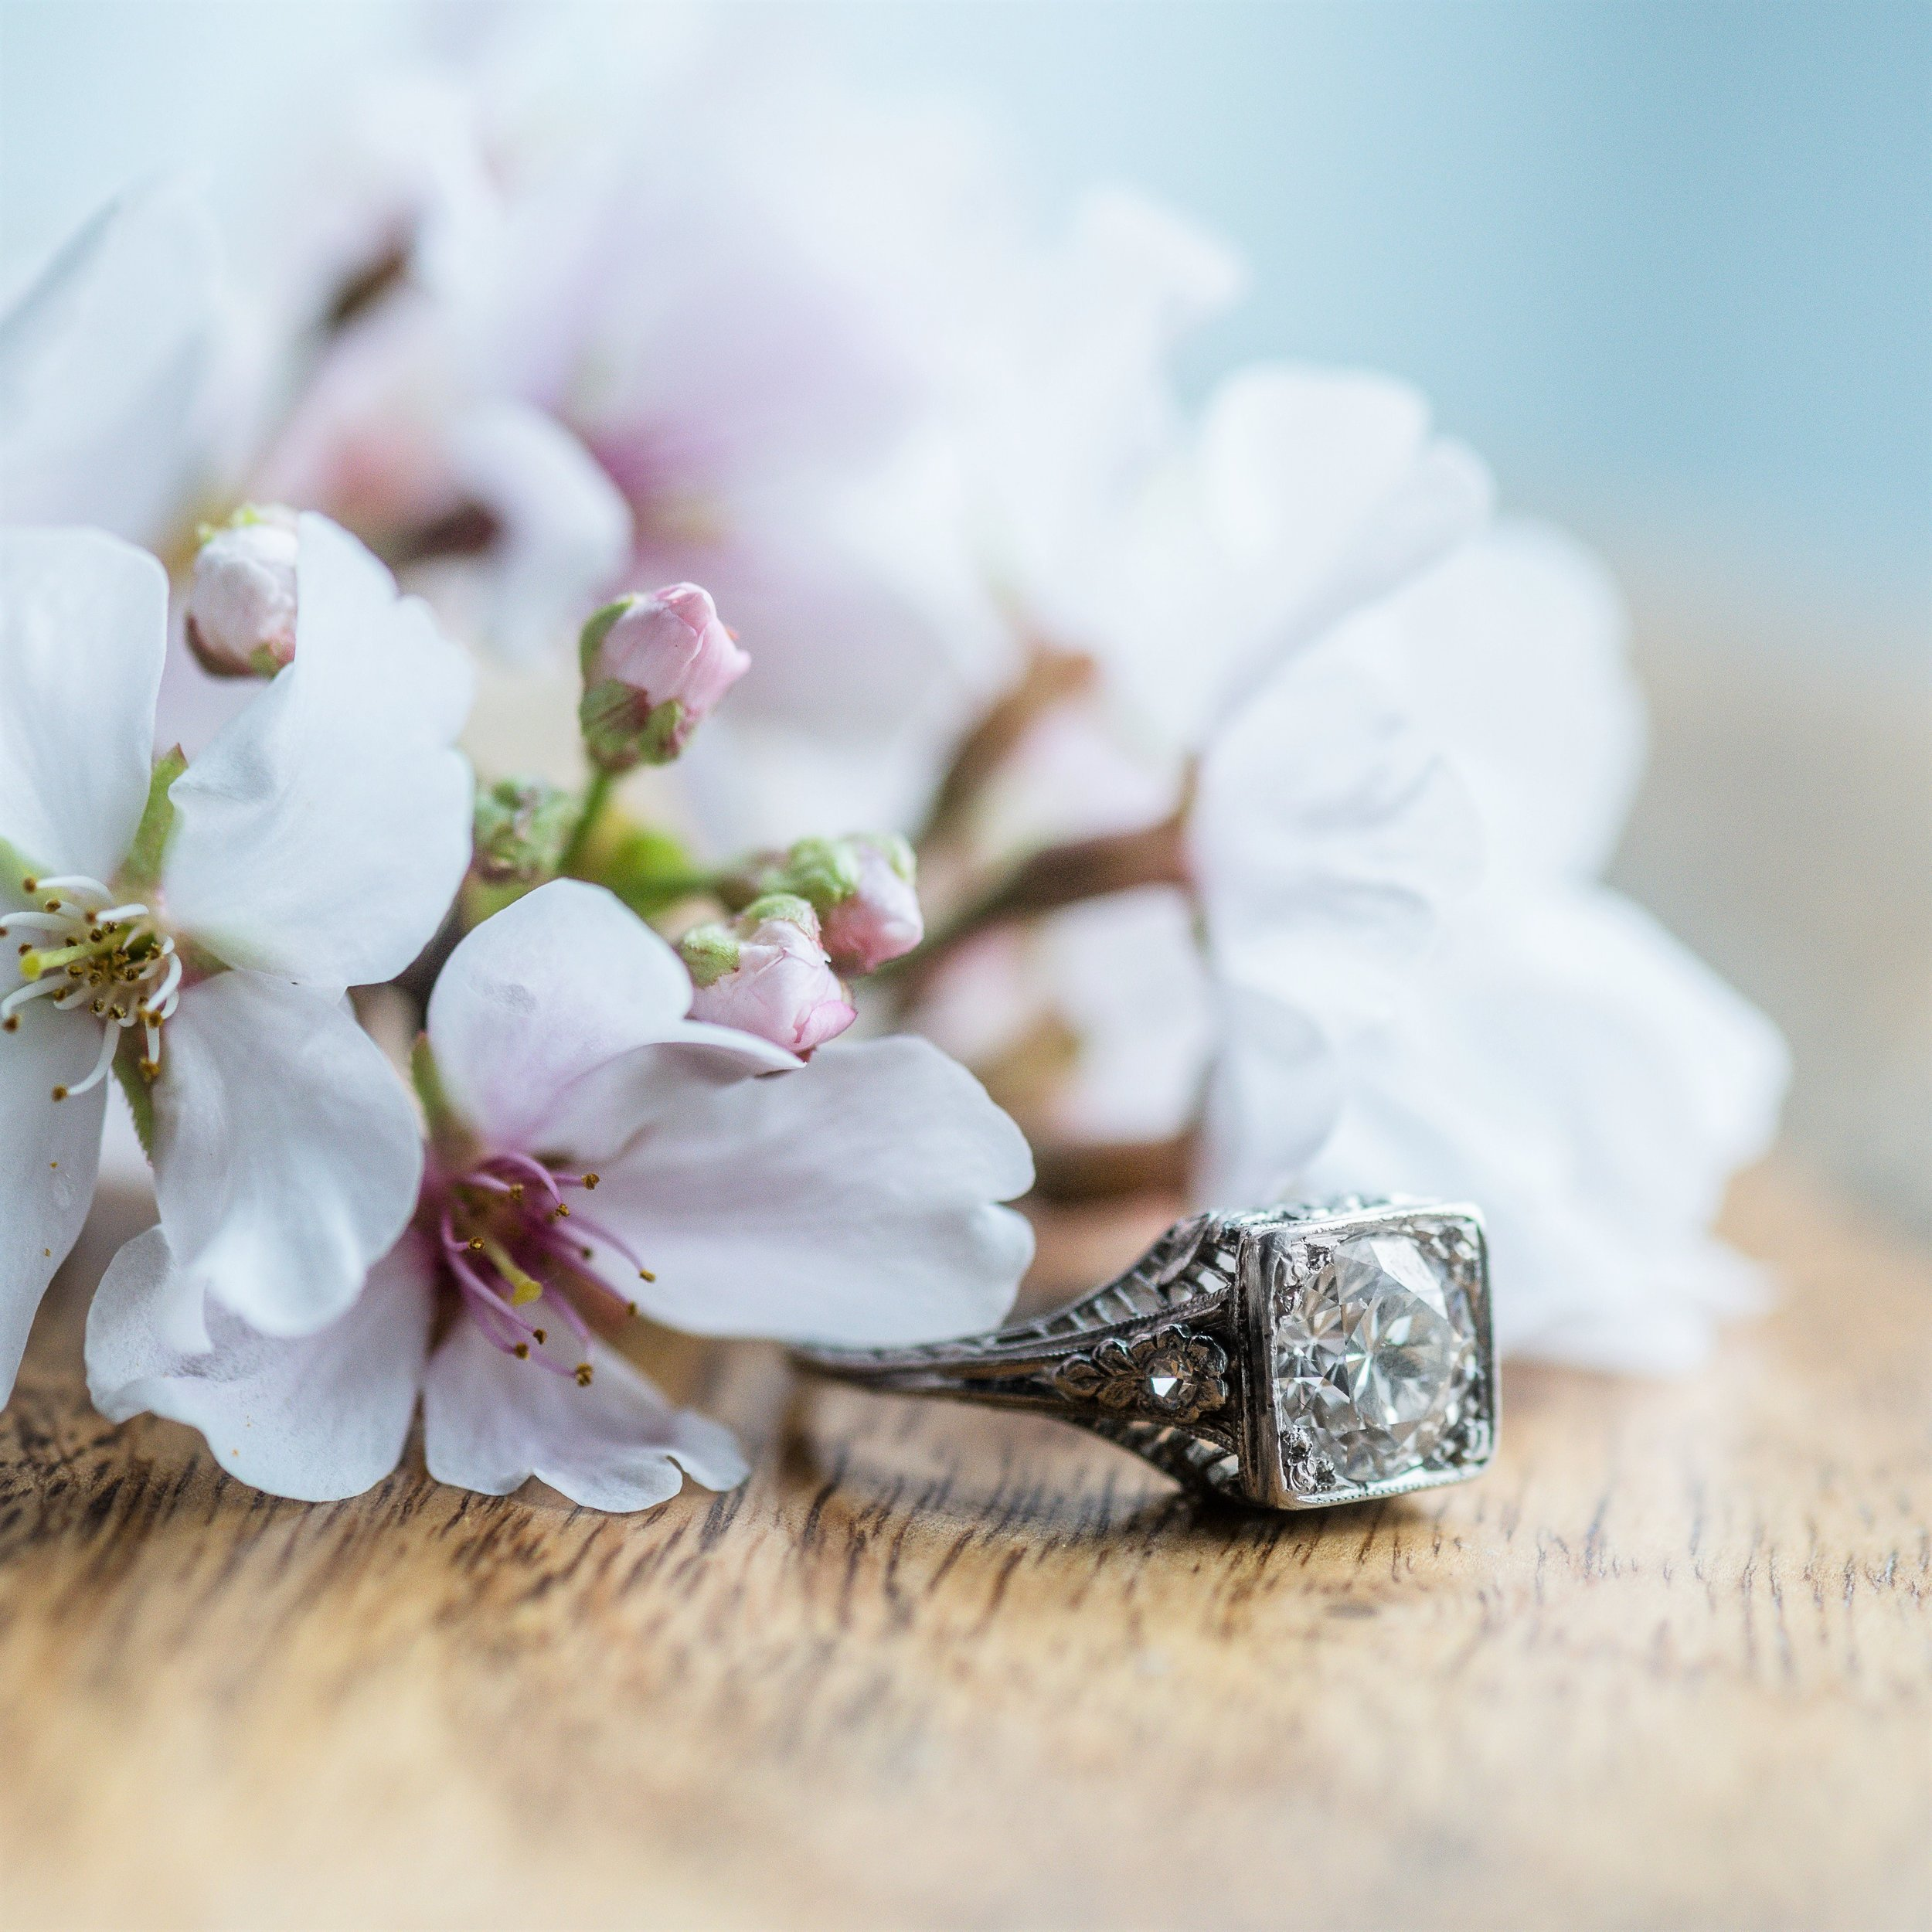 Sometimes you've got to stop and smell the flowers, or at least, admire the flower details on this fabulous Art Deco ring! Shop this 1.40 carat Old European cut diamond beauty  HERE .